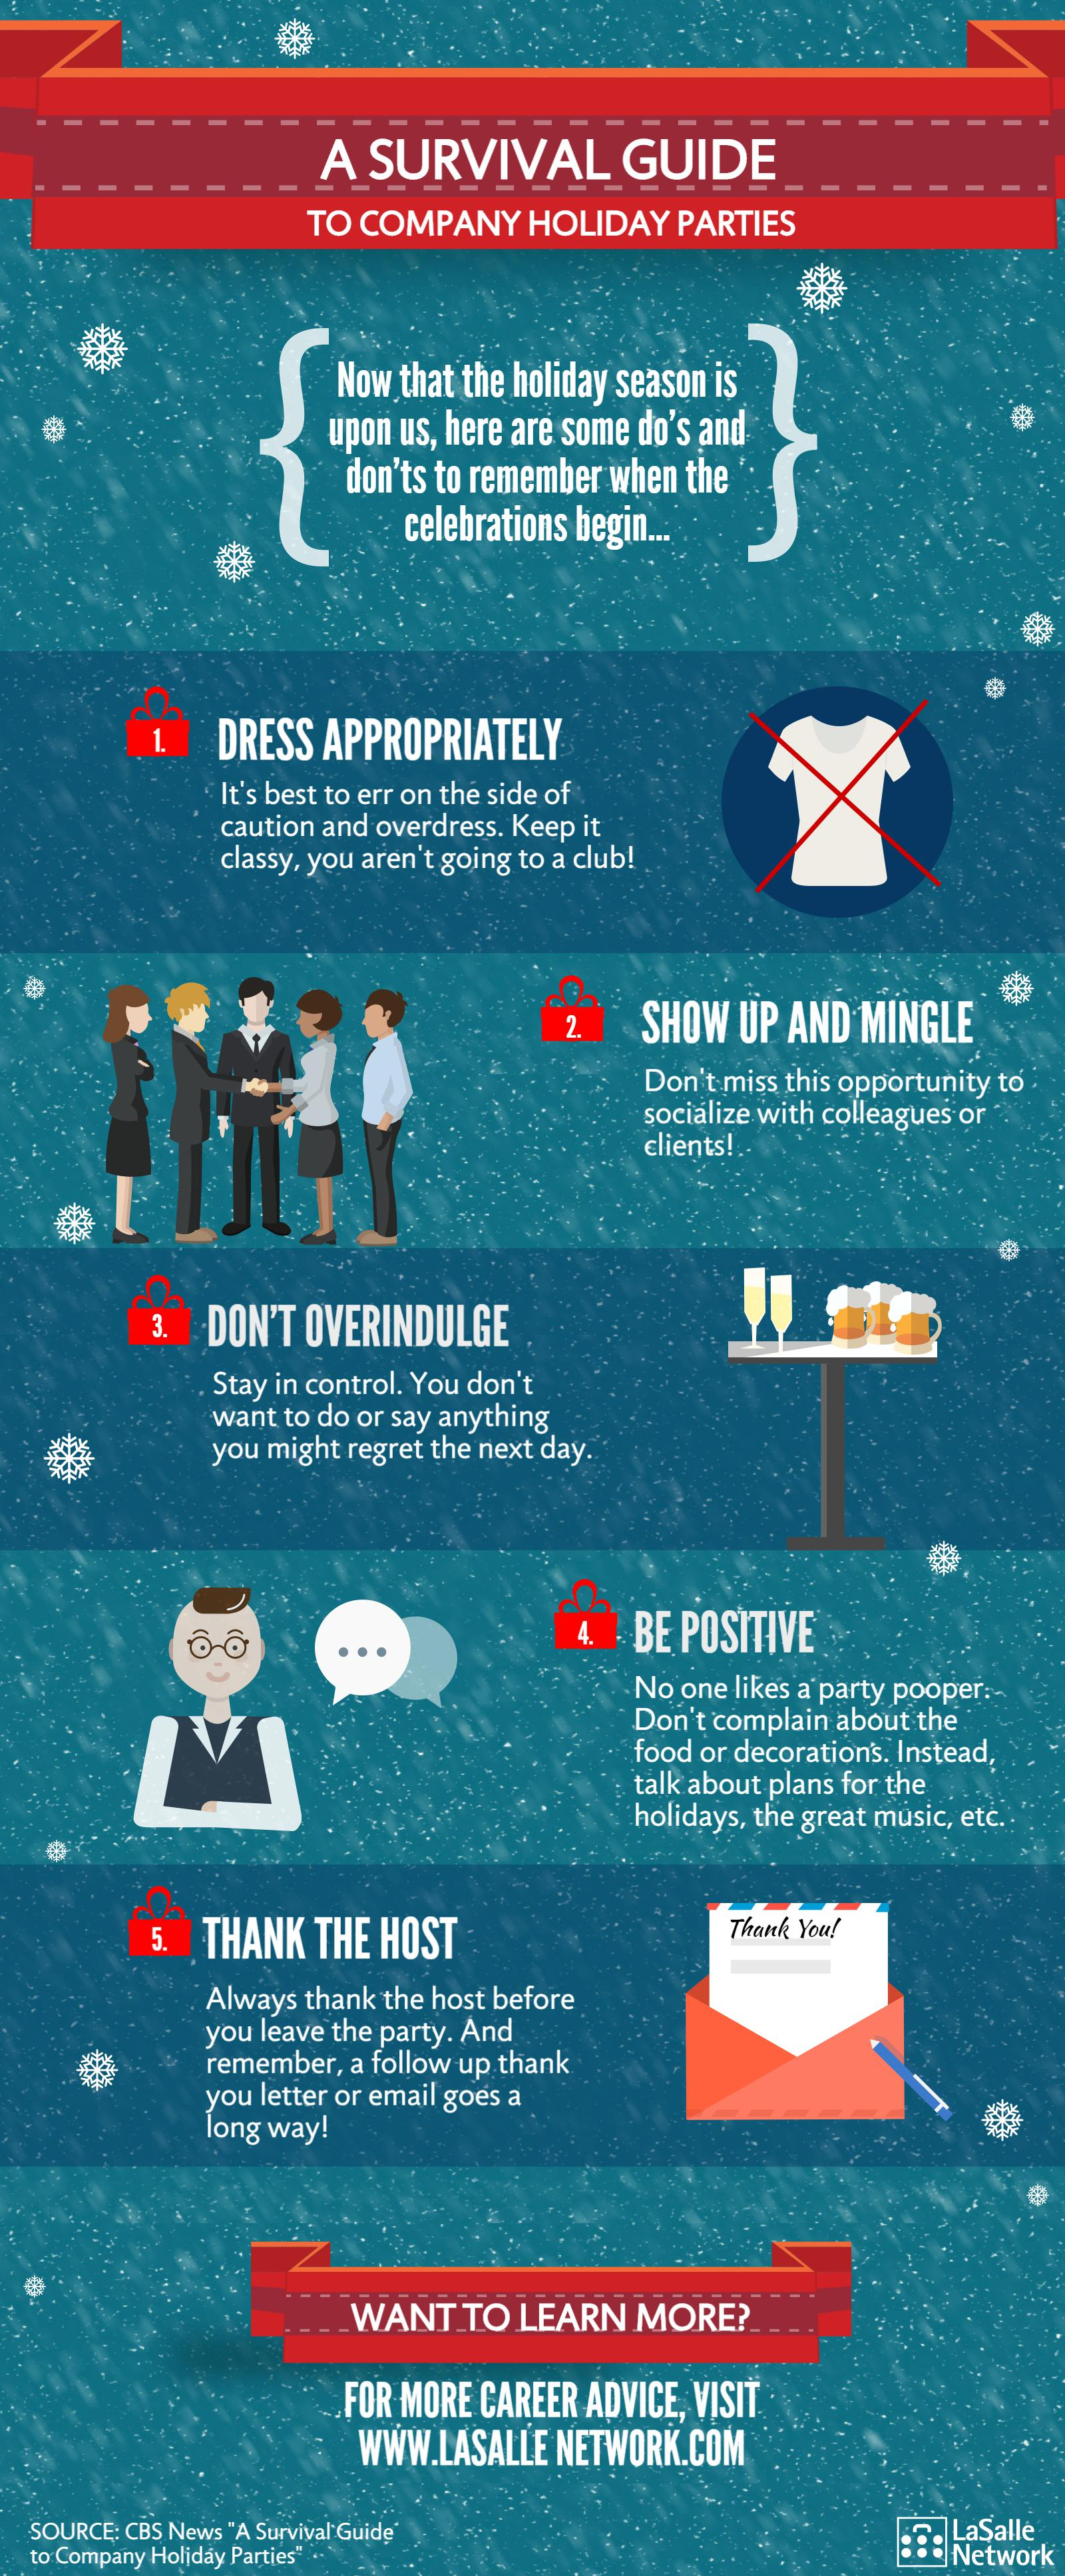 holiday party do's and don'ts infographic